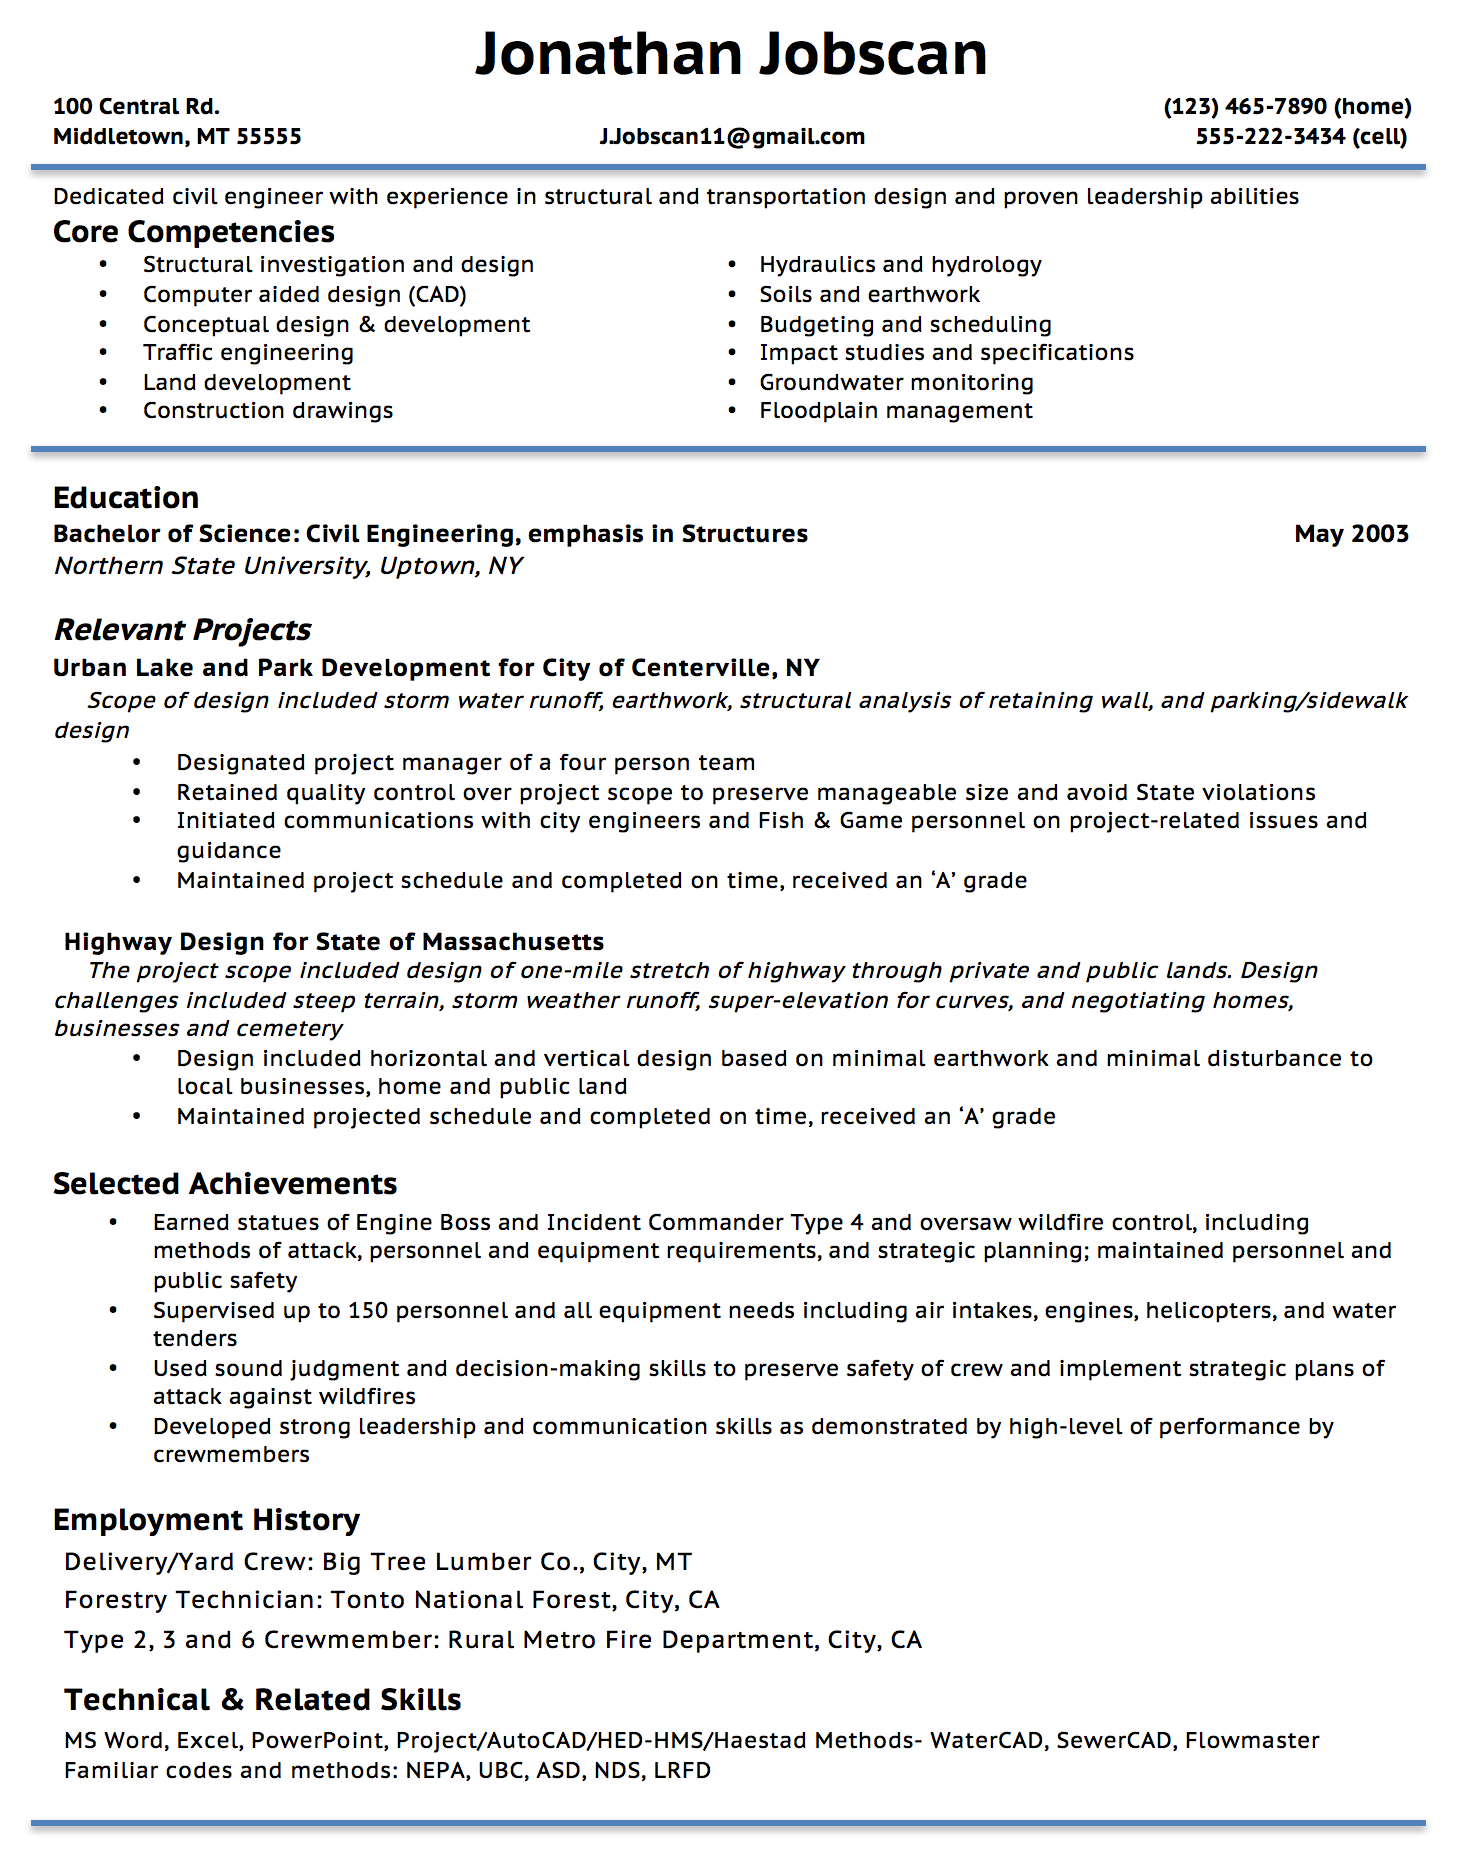 Opposenewapstandardsus  Winsome Resume Writing Guide  Jobscan With Outstanding Example Of A Functional Resume Format With Cute Administrative Resume Objective Also Registered Nurse Resume Samples In Addition Resume Online Builder And Graduate Resume Sample As Well As Government Resumes Additionally Skills For Nursing Resume From Jobscanco With Opposenewapstandardsus  Outstanding Resume Writing Guide  Jobscan With Cute Example Of A Functional Resume Format And Winsome Administrative Resume Objective Also Registered Nurse Resume Samples In Addition Resume Online Builder From Jobscanco